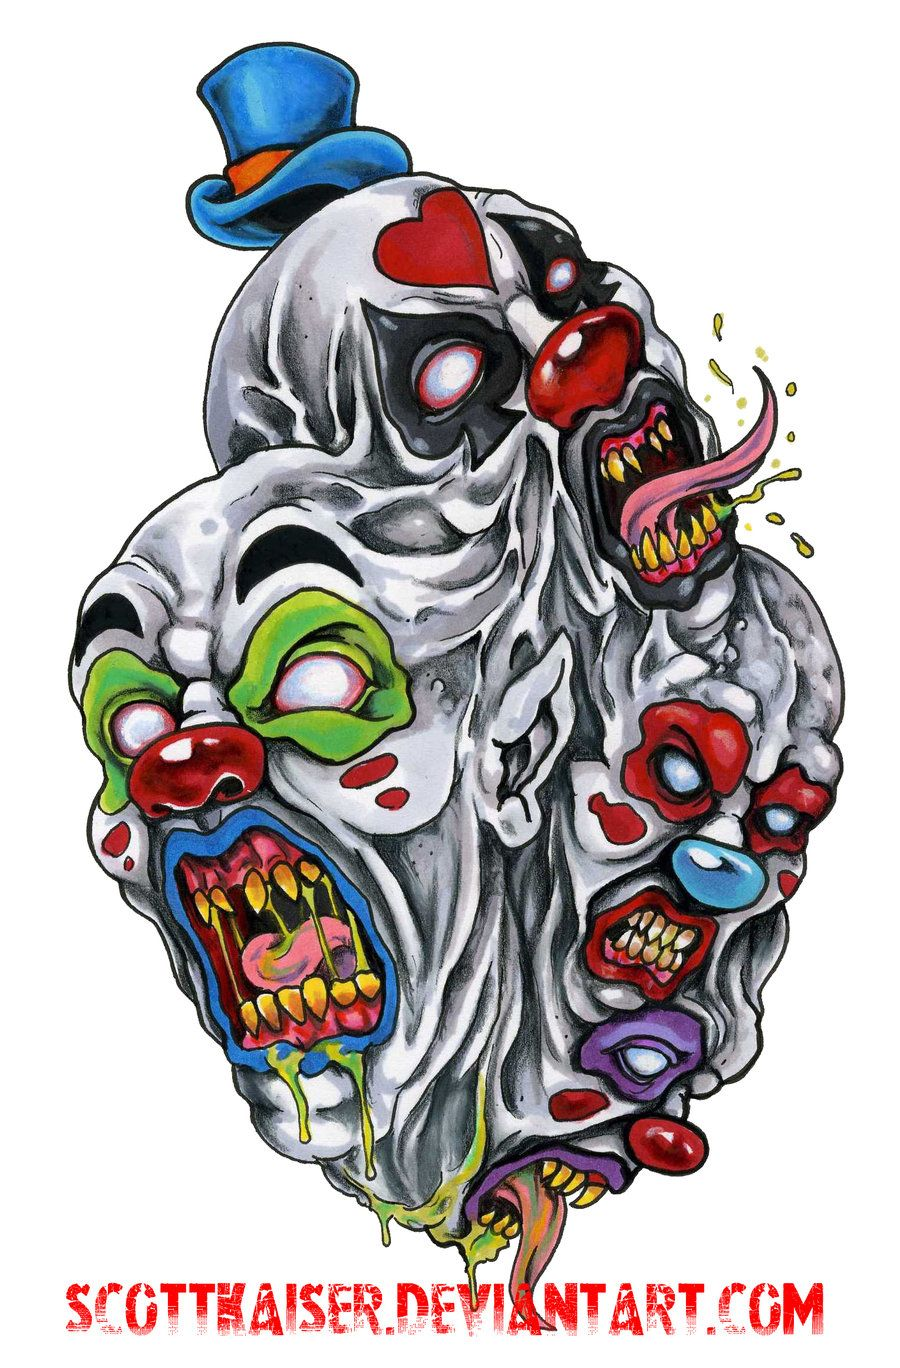 Clown Spawn By Scottkaiser D57mroe Jpg Jpeg Image 900 1368 Pixels Clown Tattoo Evil Clown Tattoos Evil Clowns